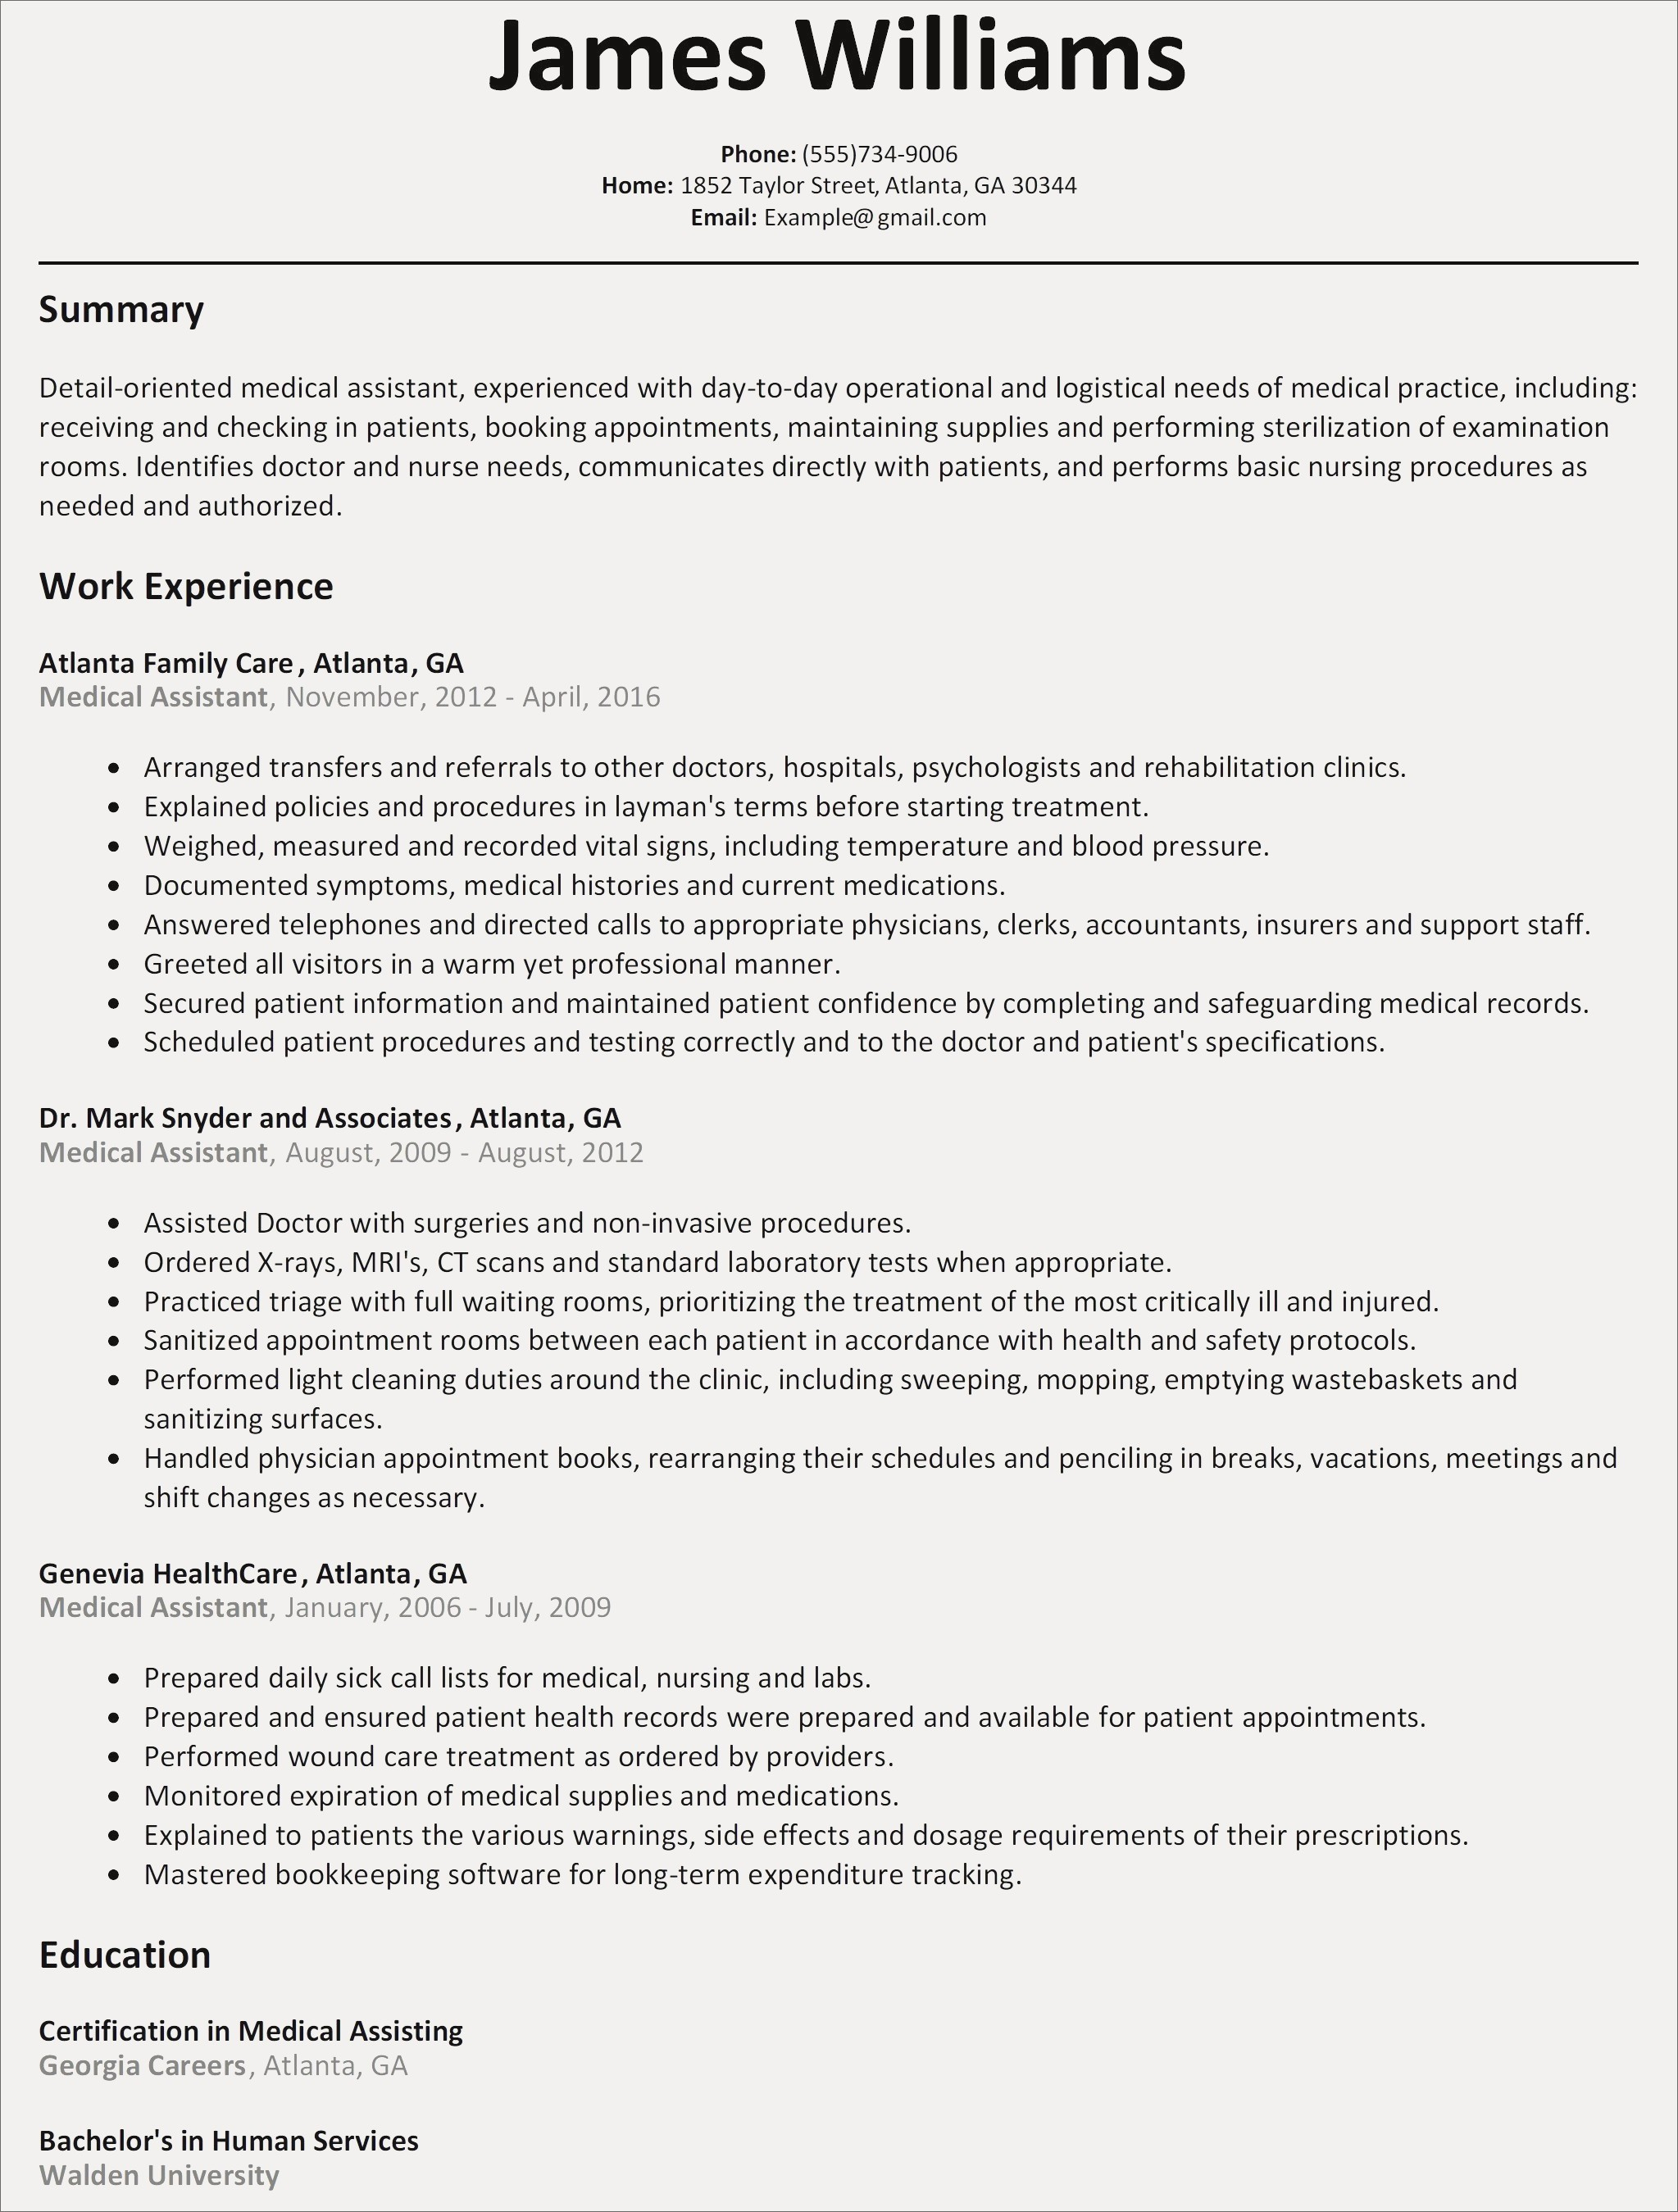 Clinical Research Resume - Skill Examples for Resume Inspirationa Examples Skills Fresh Skills